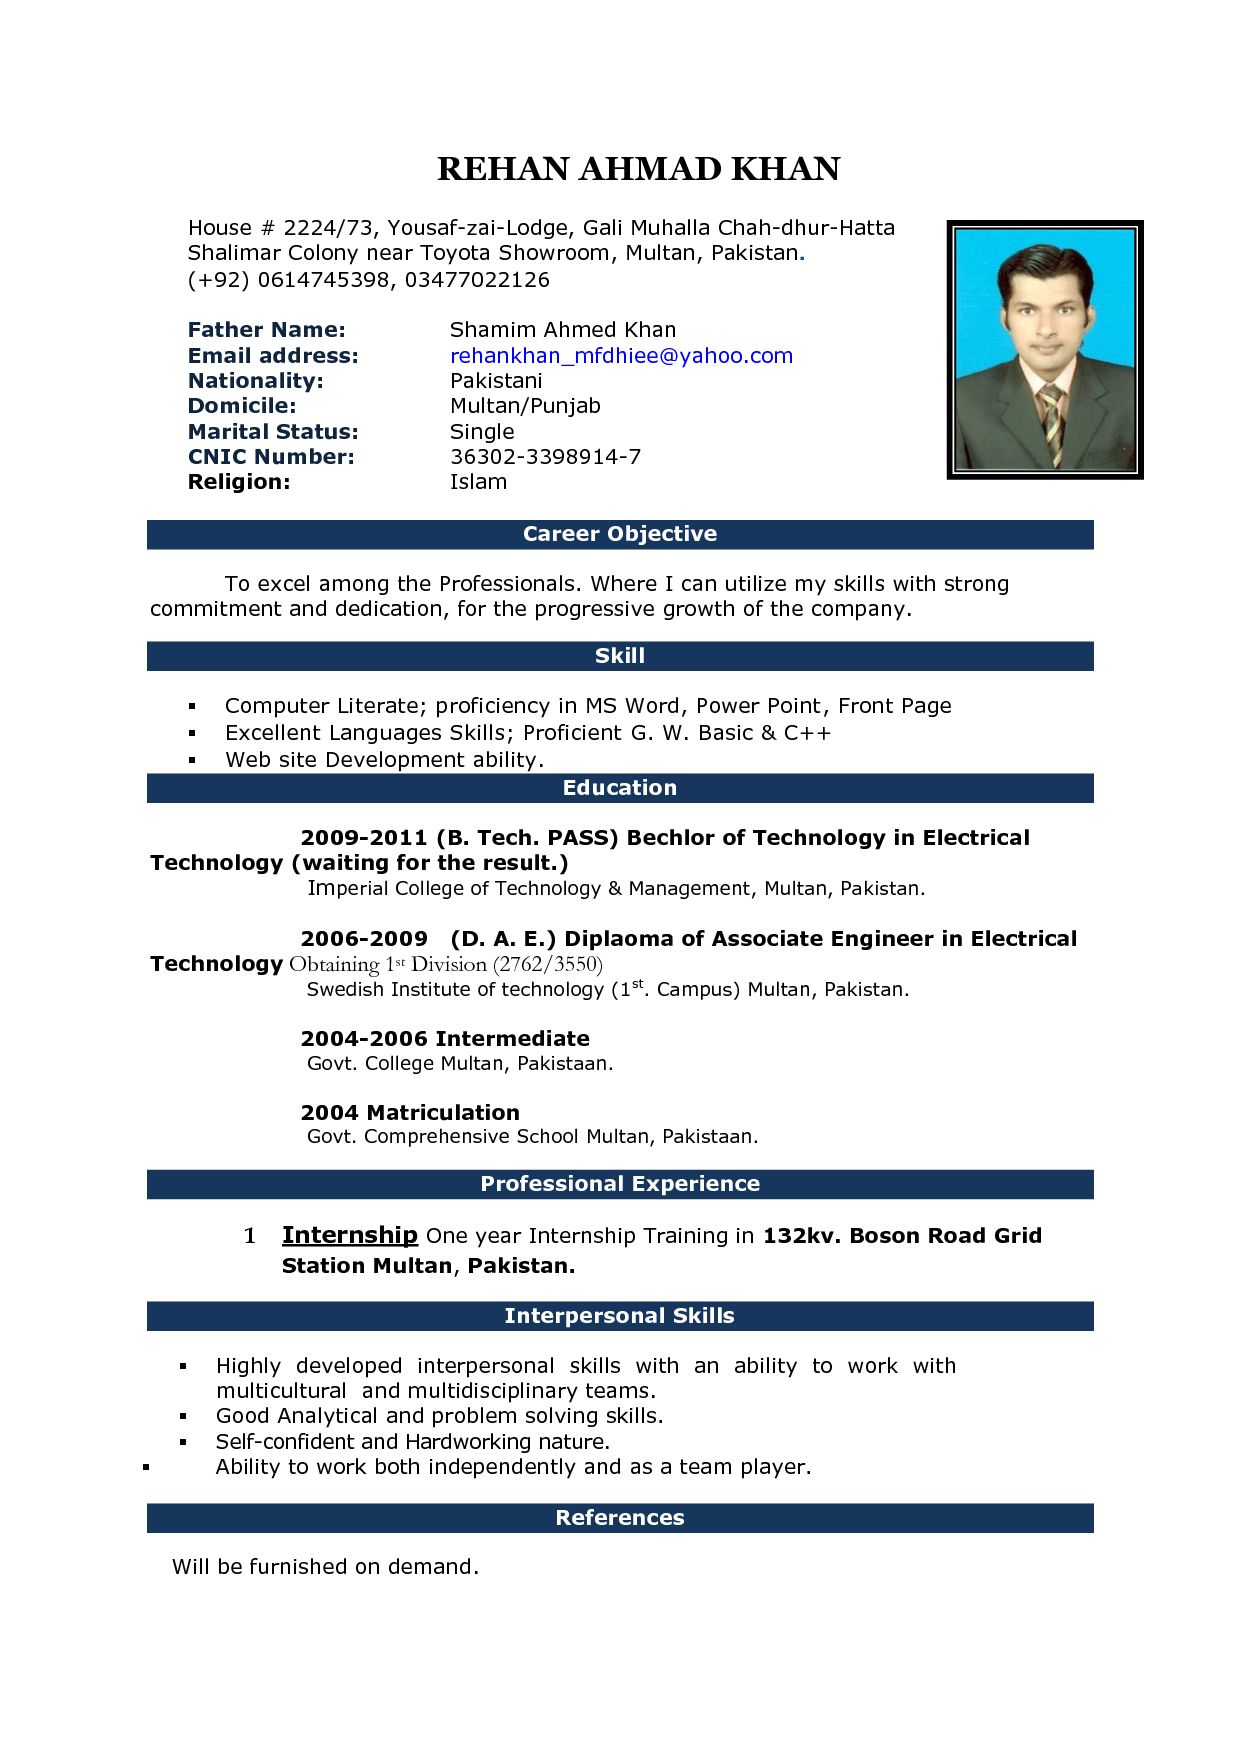 free cv format in ms word fieldstationco microsoft office resume templates for freshers Resume Microsoft Office 2020 Resume